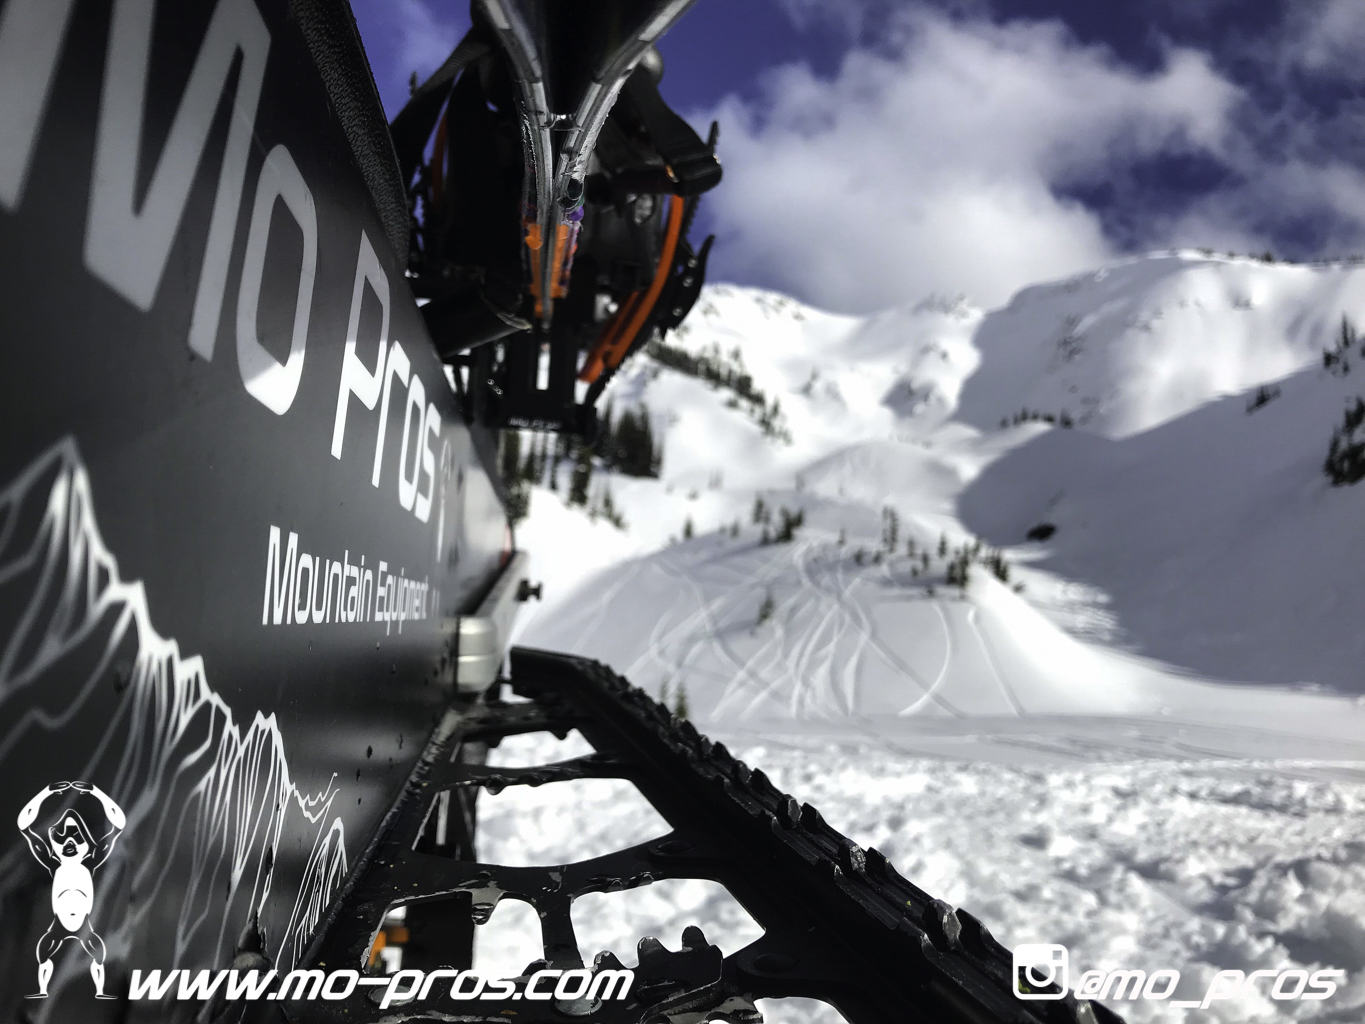 20_Gear_Gun Rack_LinQ Snowboard Ski_Snowbike_Timbersled Rack_Tsaina Rack_CFR rack_Cheetah Factory Racing_Snowboard rack_snowboard_snowmobile bag_Snowmobile_timbersled bag_gas Rack_Ski_Snowbike_Snowbo.jpg